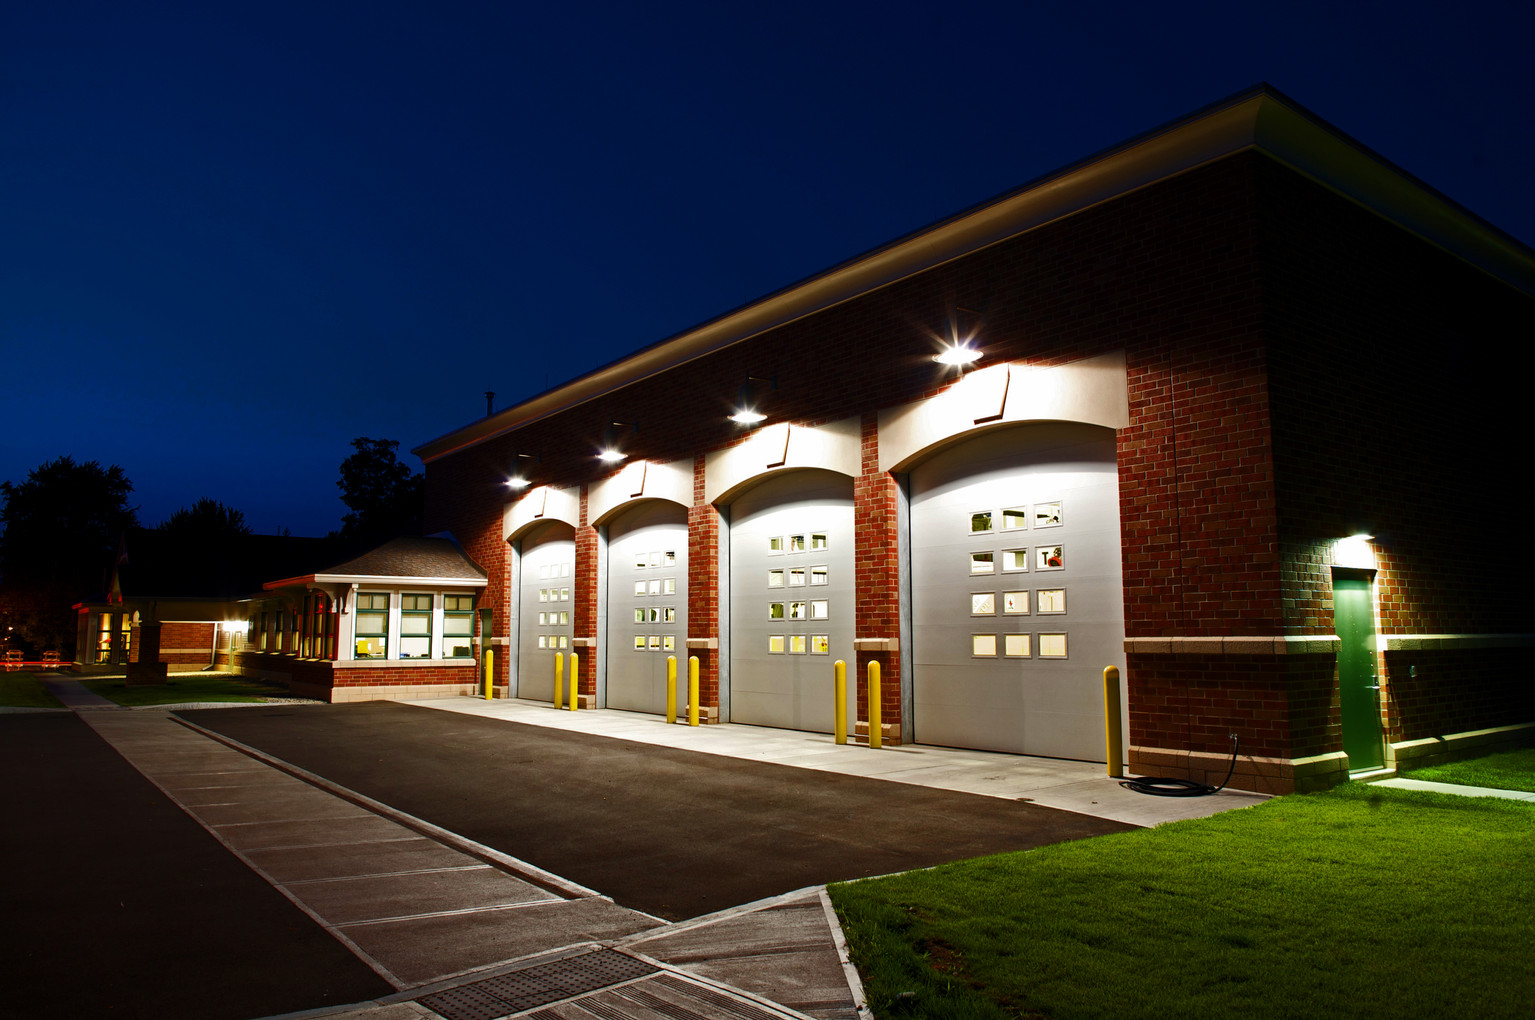 Skaneateles Fire Station - Exterior - Garage Doors Closed